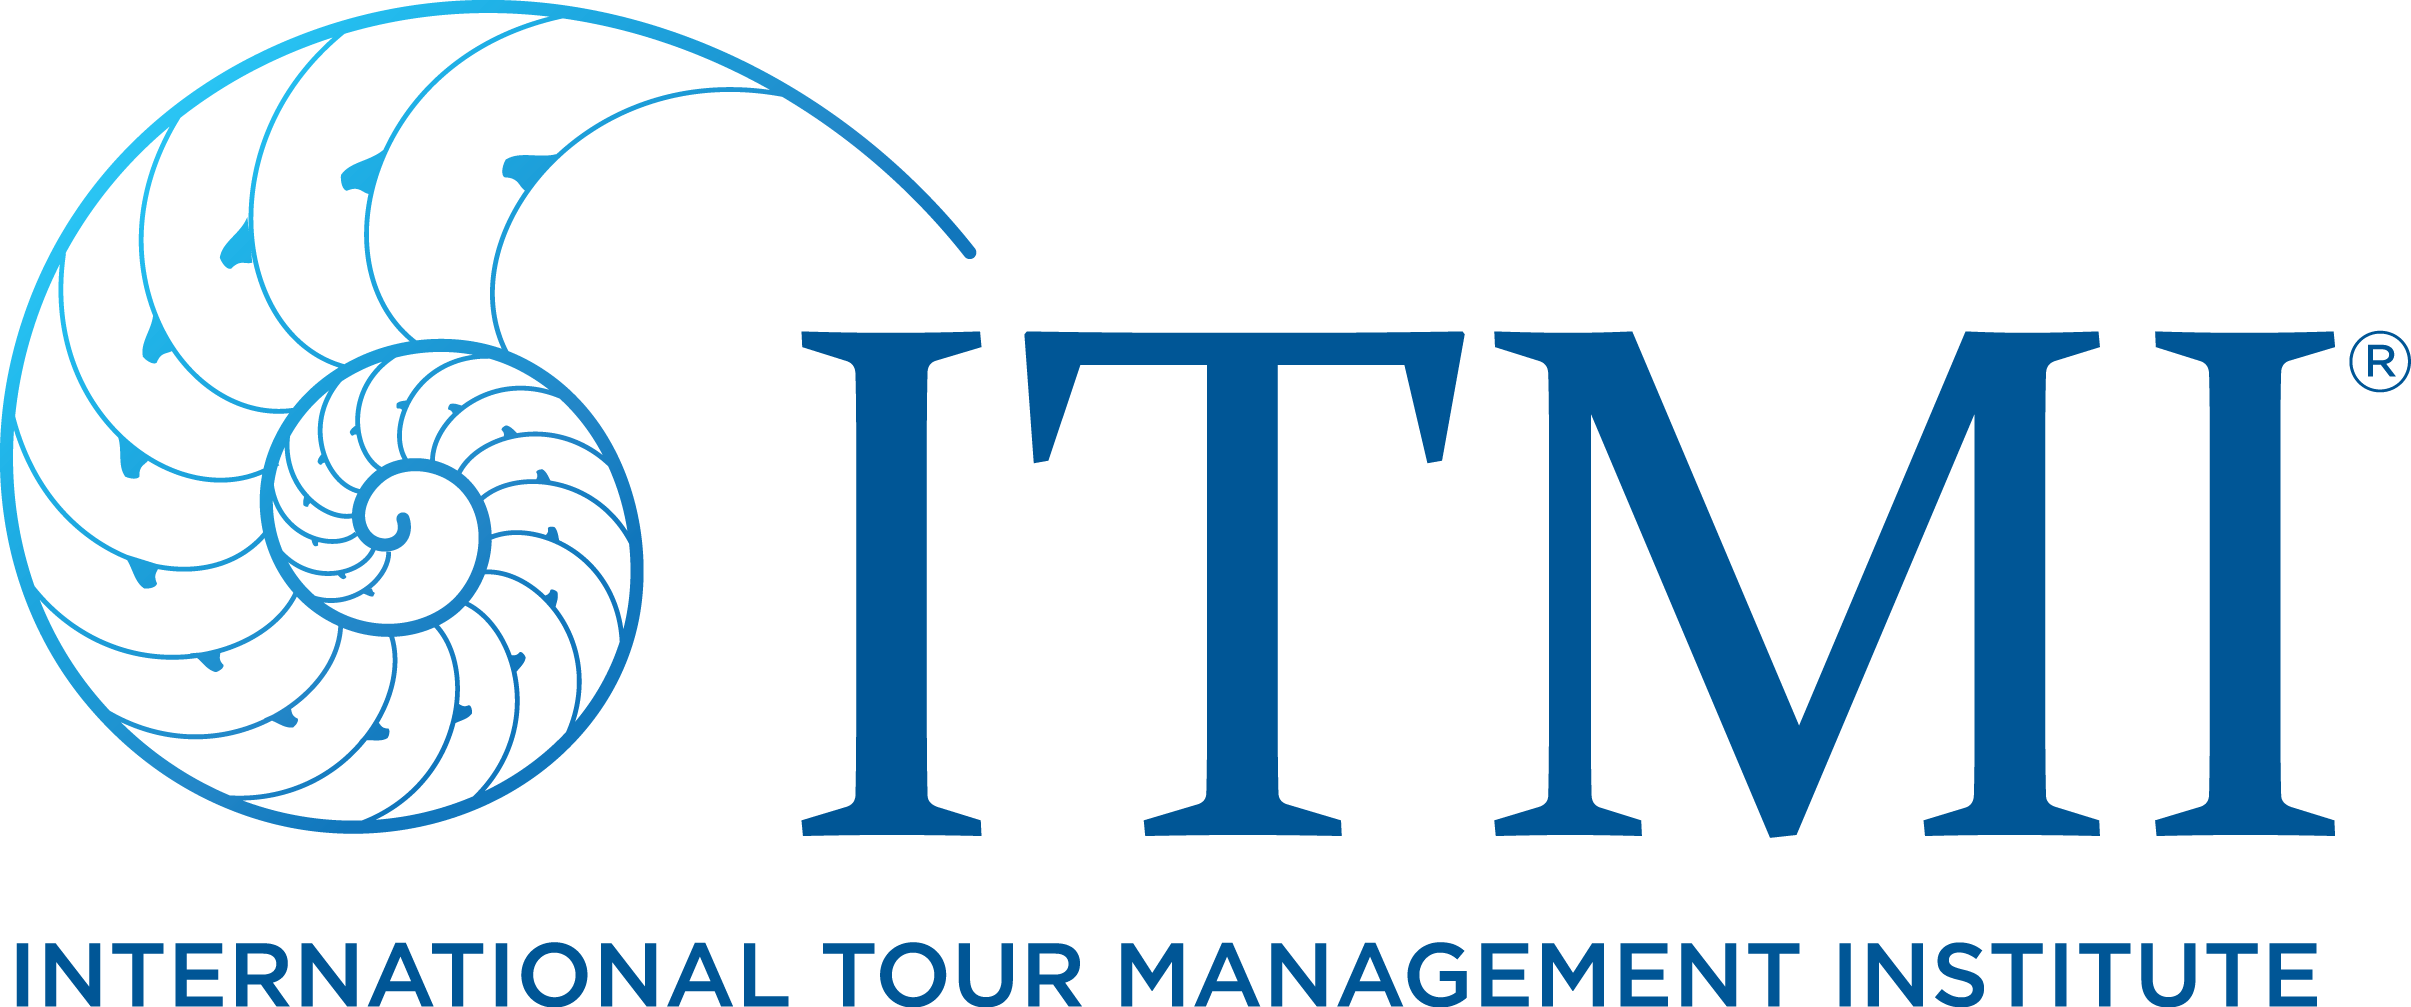 International Tour Management Institute (ITMI)